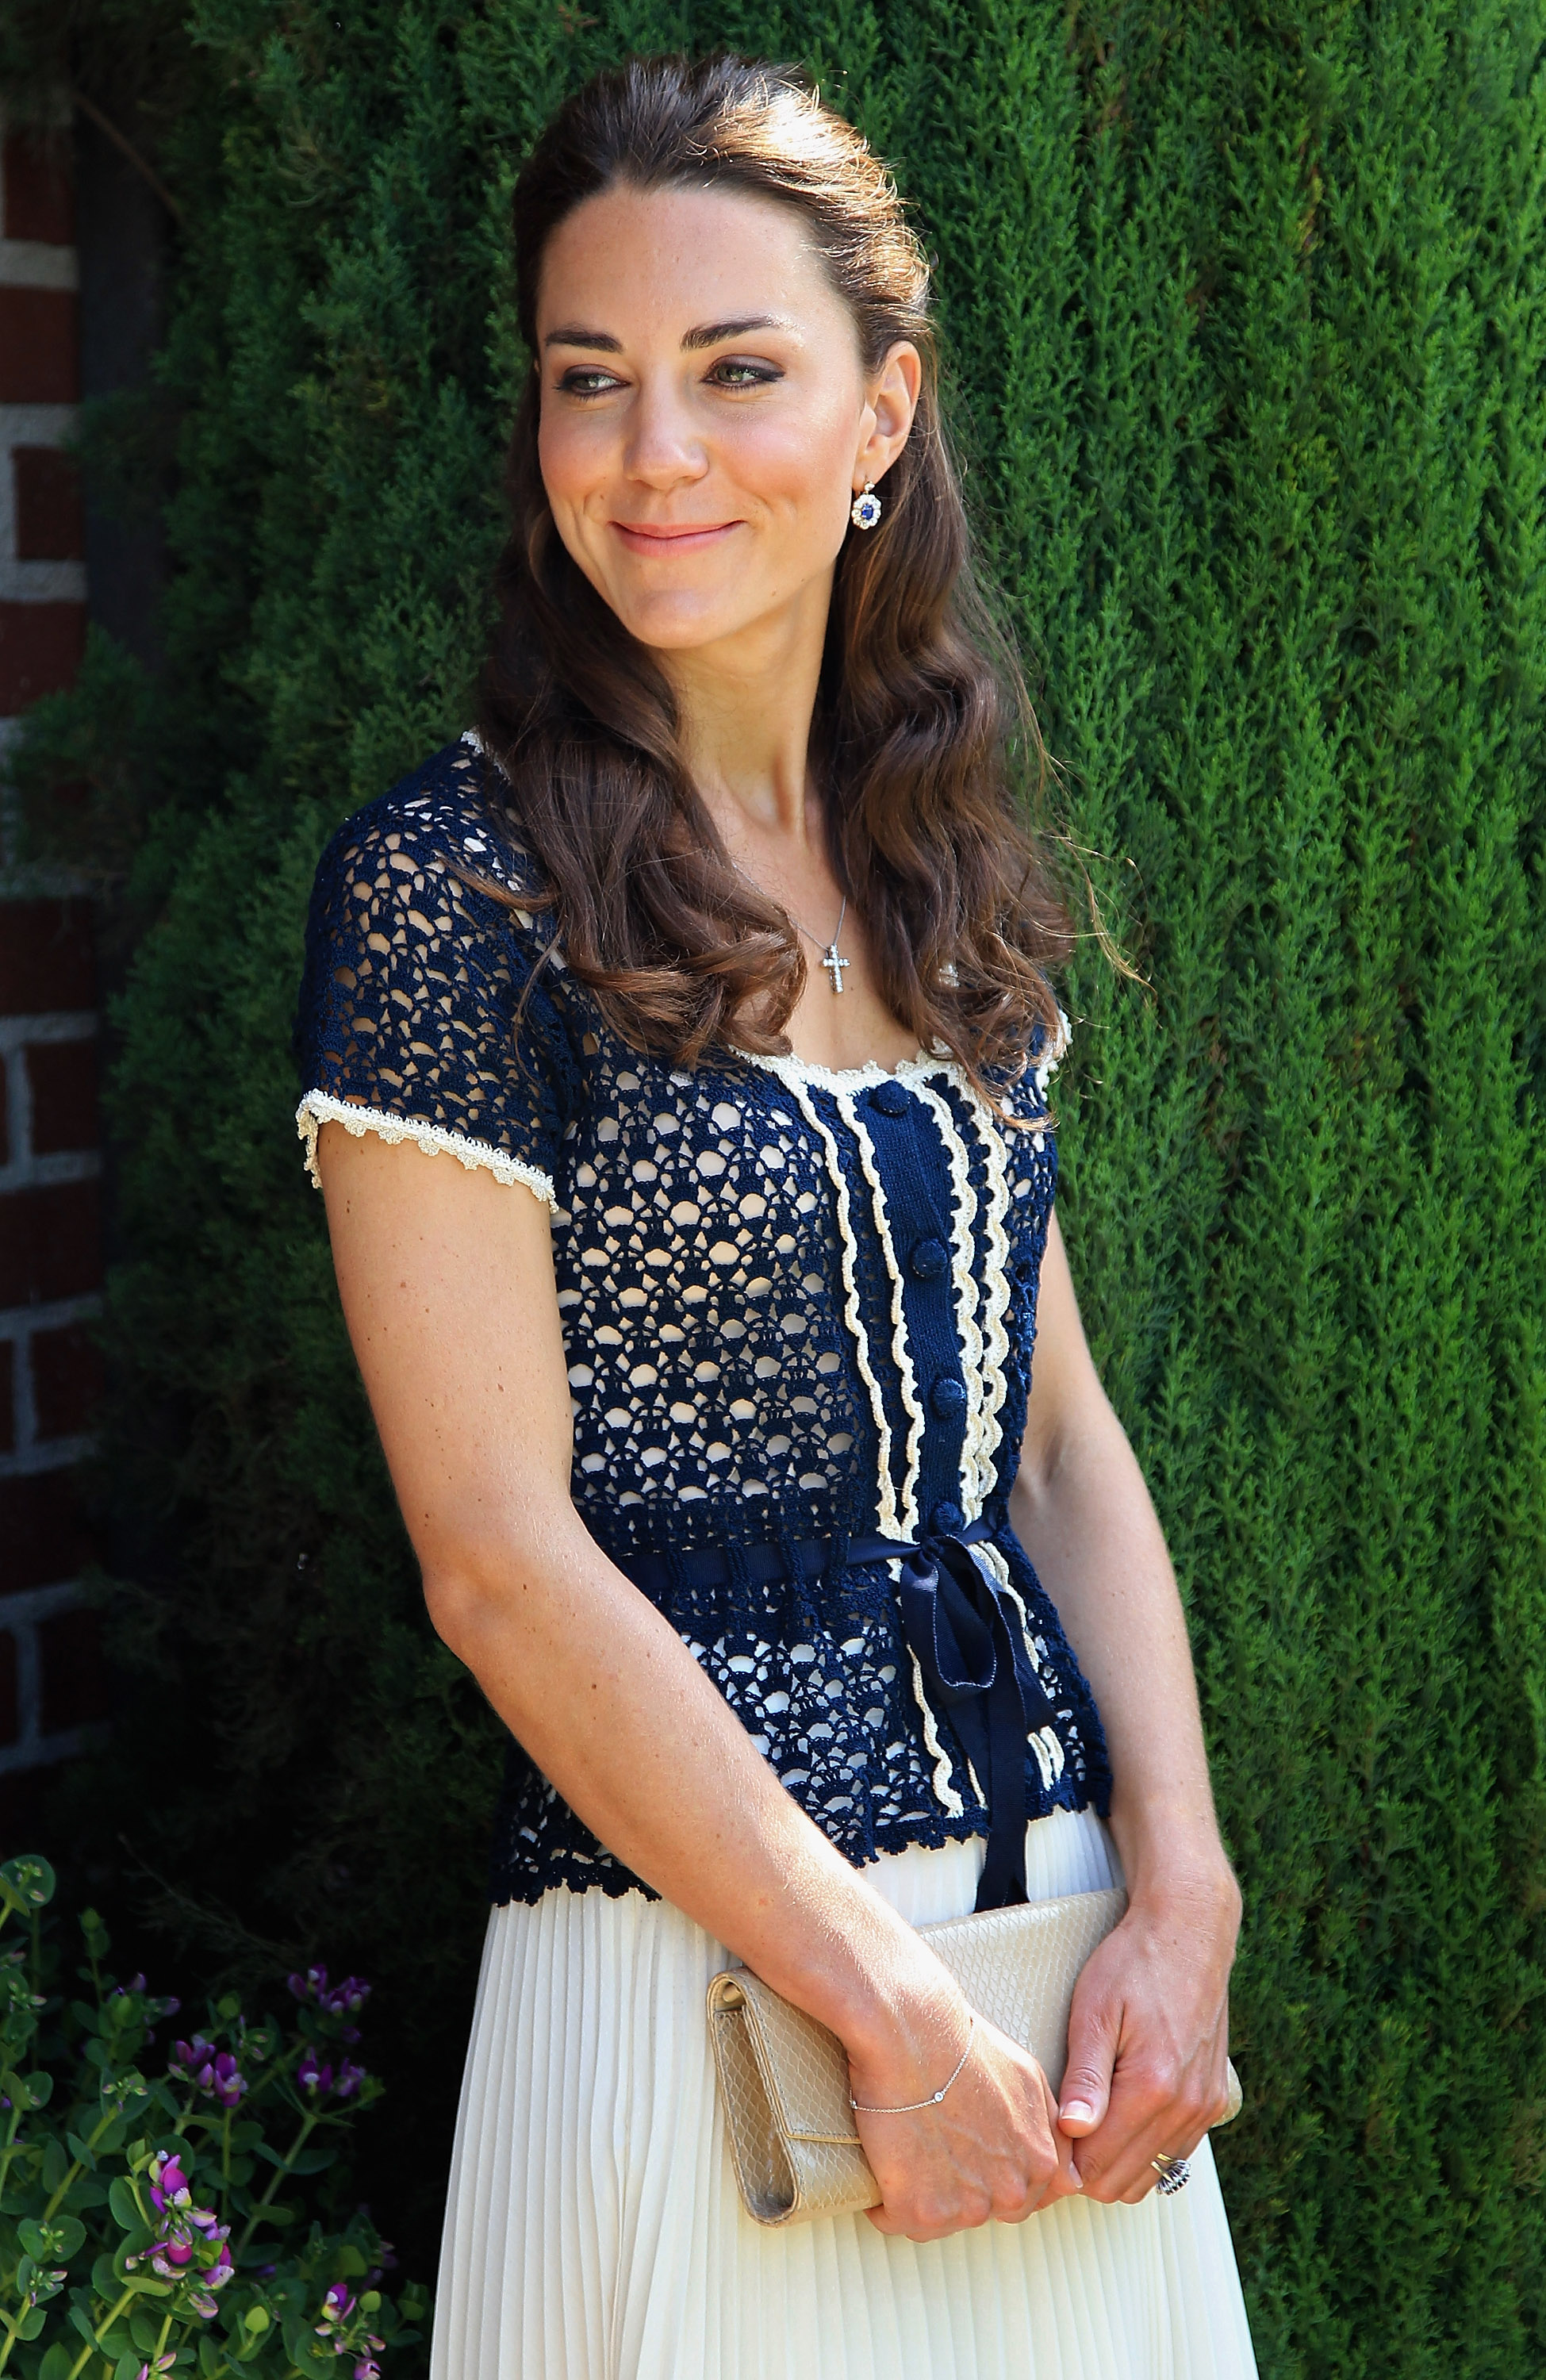 <strong>Princess in Profile</strong>                                   Middleton picked a knit top and white skirt for a reception in Santa Barbara, Calif., on July 10, 2011. The ceremony marked the launch of Tusk Trust's U.S. Patron's Circle. Prince William is a royal patron of the trust, which supports development projects across Africa.